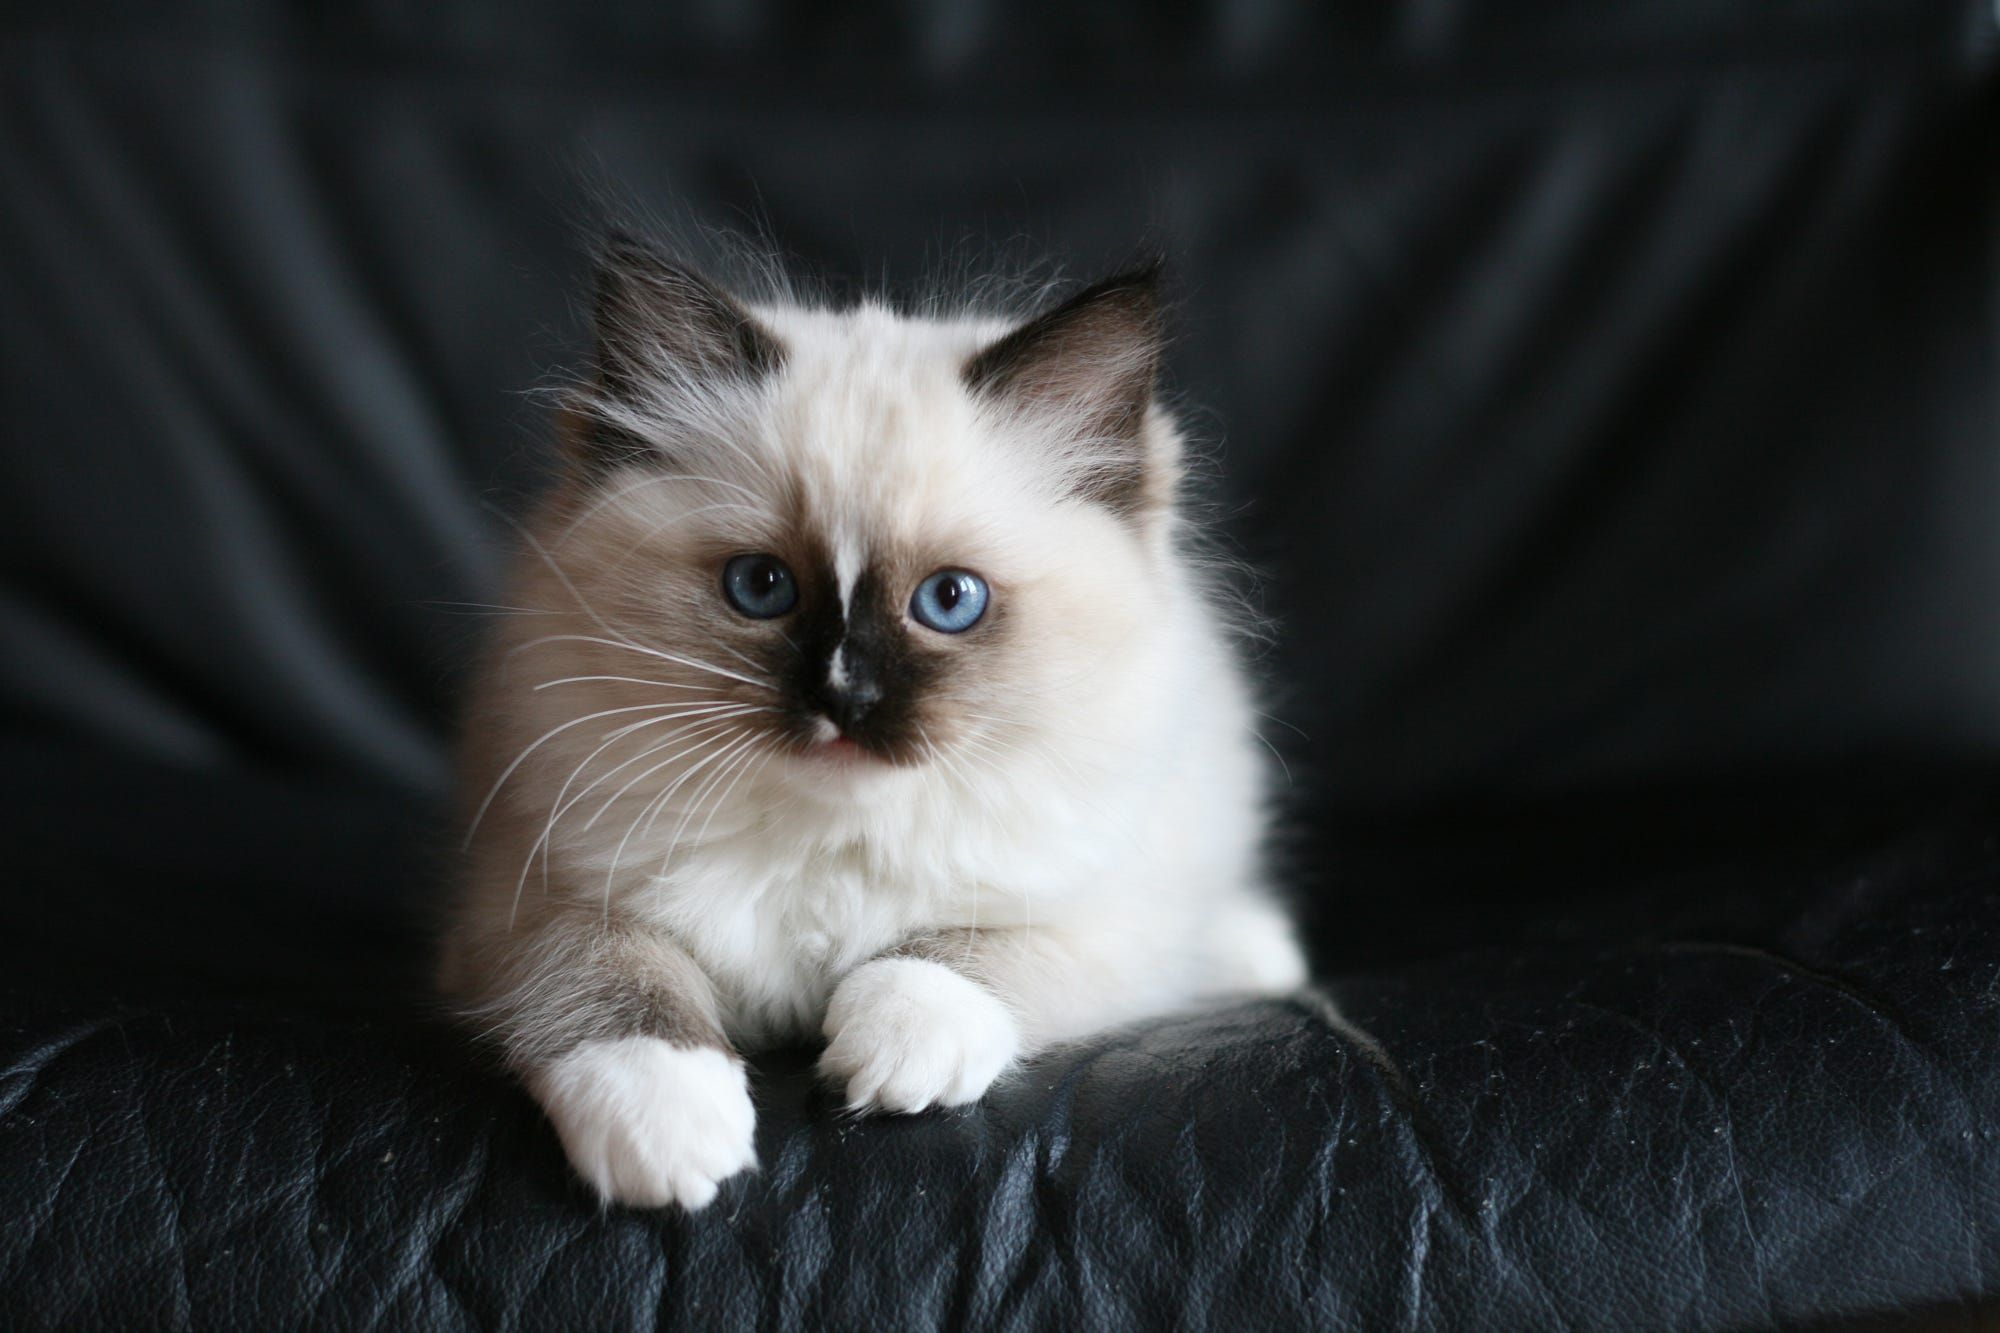 40 Most Popular Images Of Ragdoll Cats And Kittens In 2020 Cute Baby Cats Ragdoll Cat Baby Cats